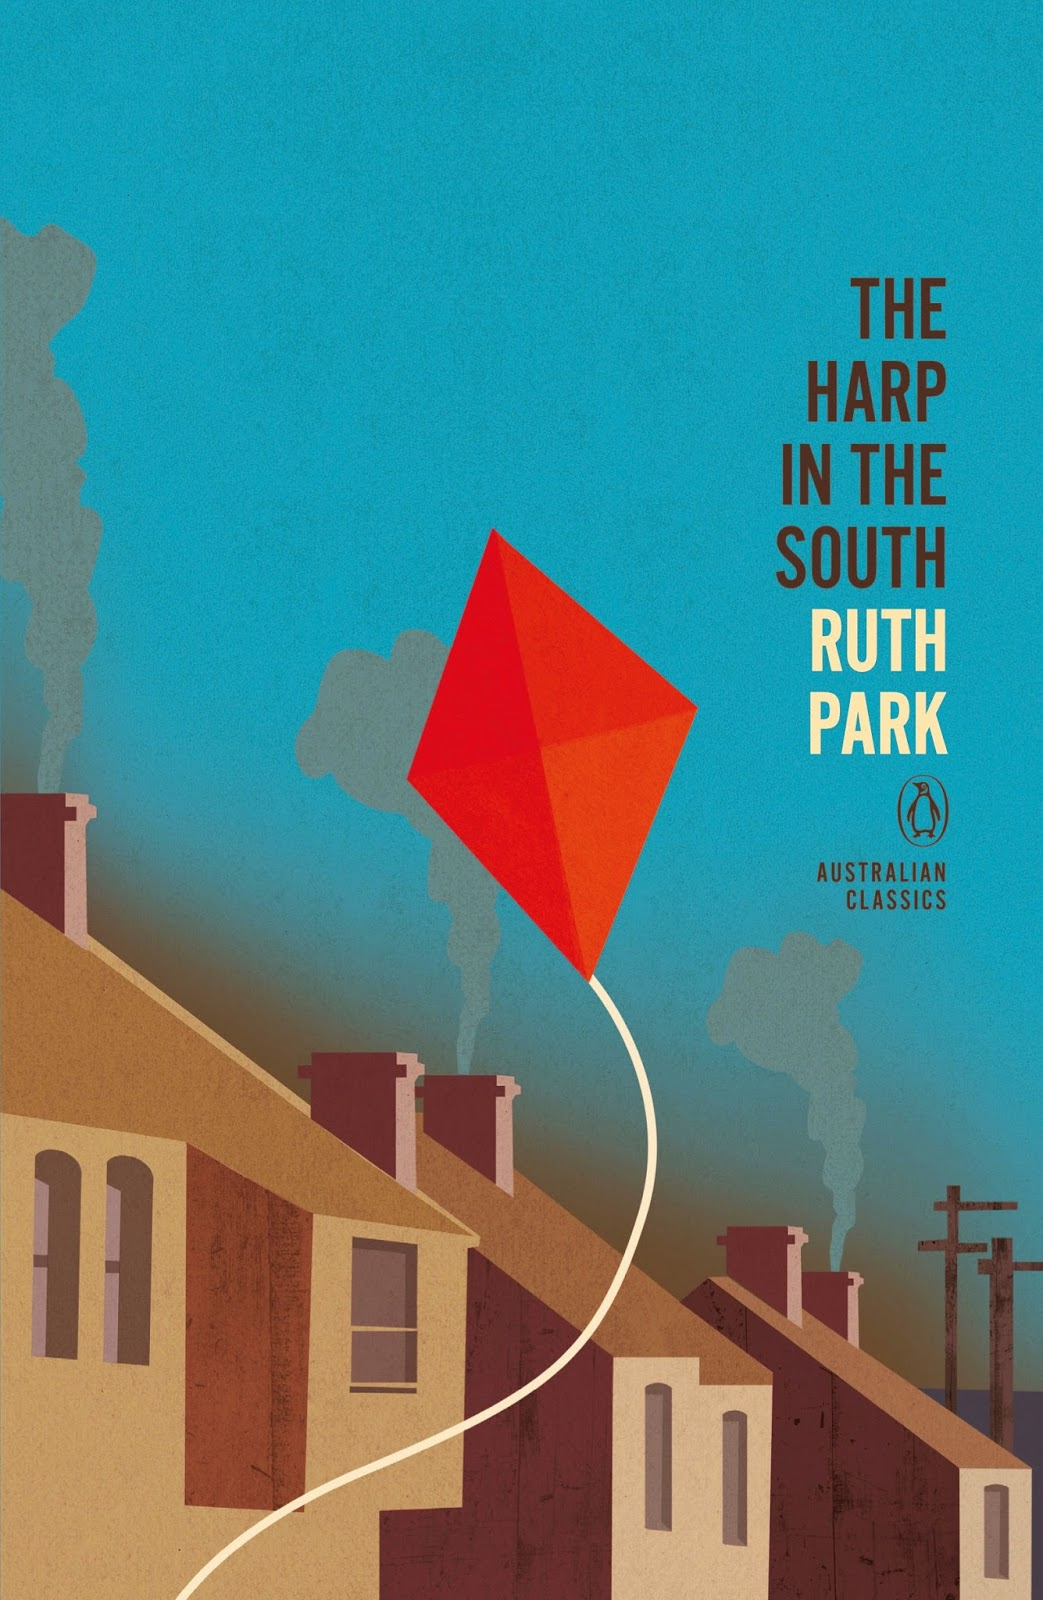 THE HARP IN THE SOUTH PDF DOWNLOAD